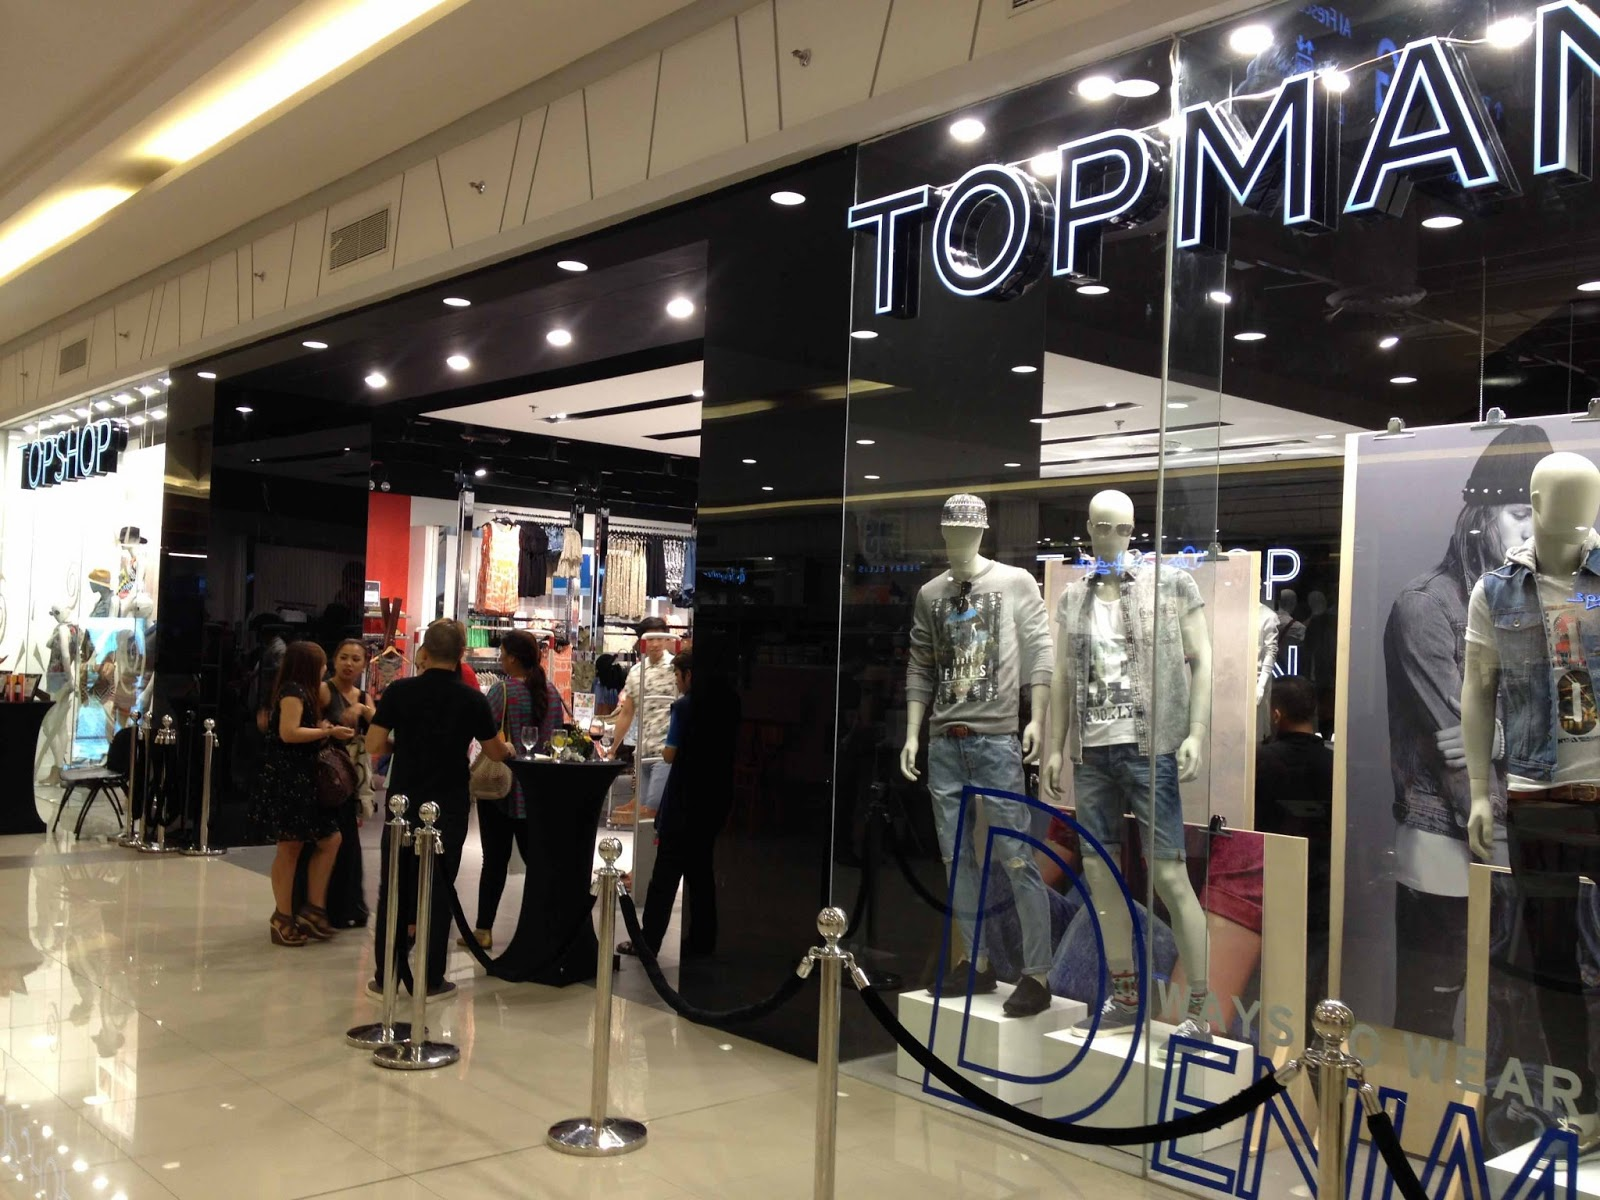 327a5dc90ed It s Me Miss M  Topshop Topman Robinsons Magnolia Now Open!